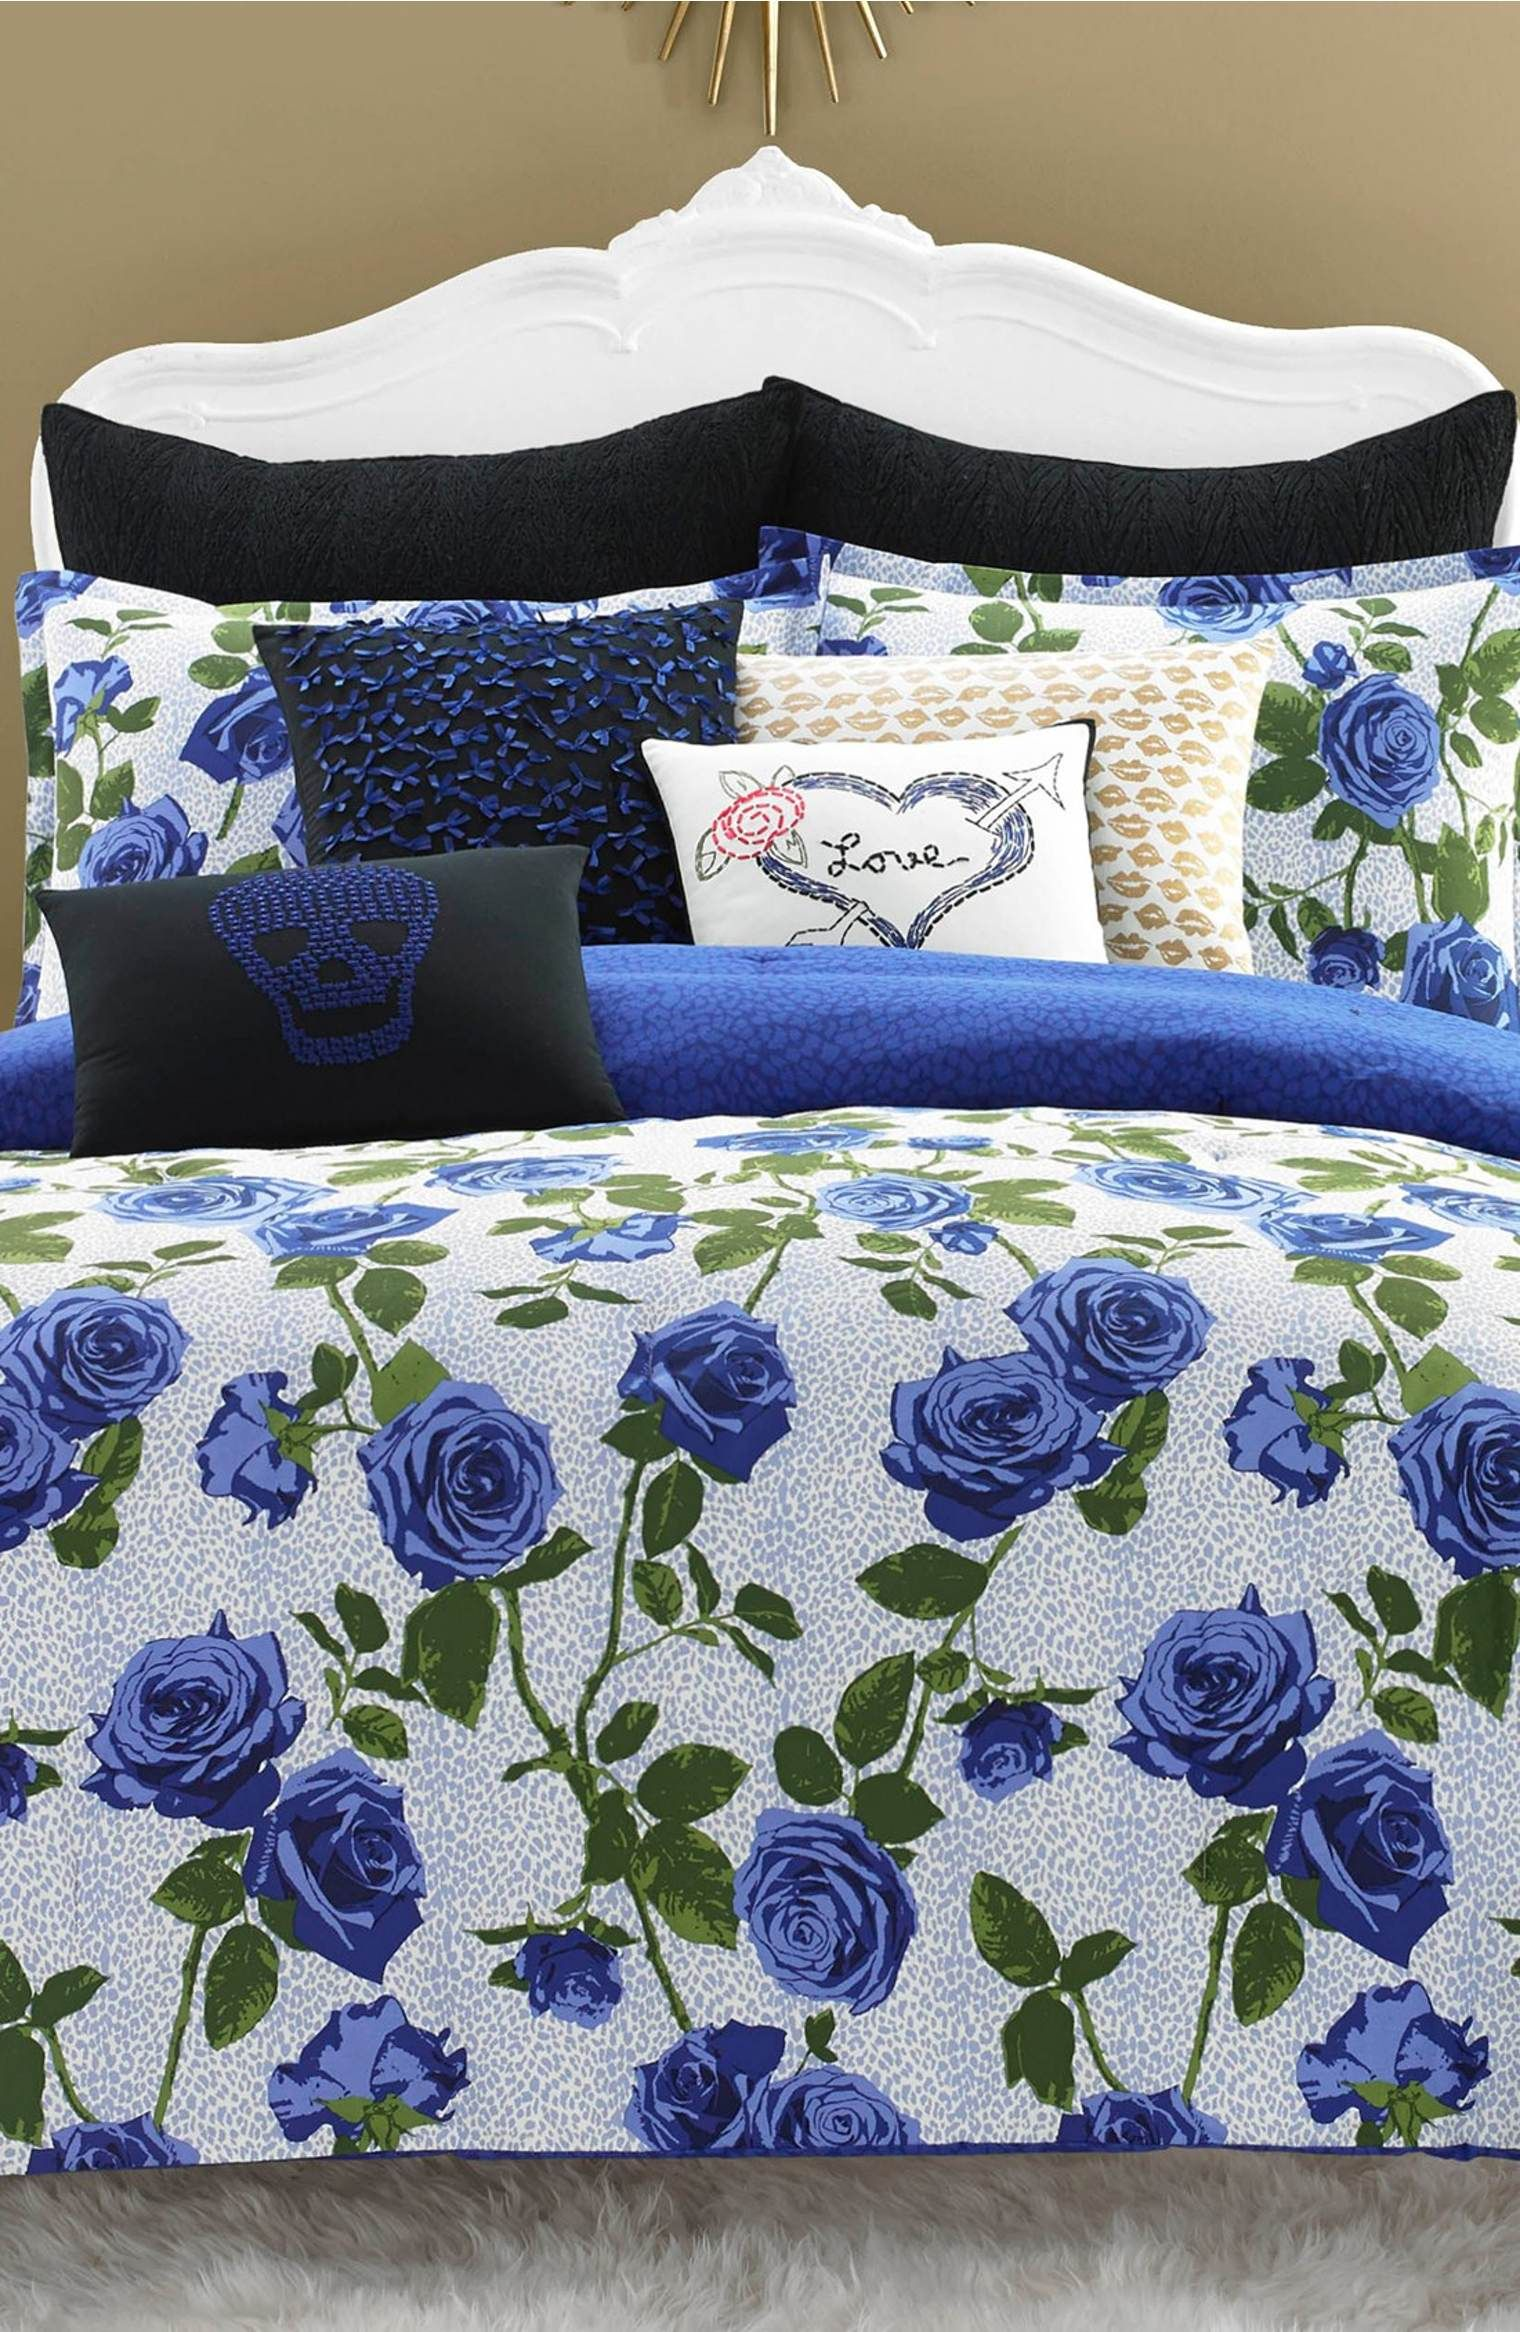 Betsey Johnson Bedding Regal Roses Comforter Sham Set Comforter Sets Rose Comforter Betsey Johnson Bedding